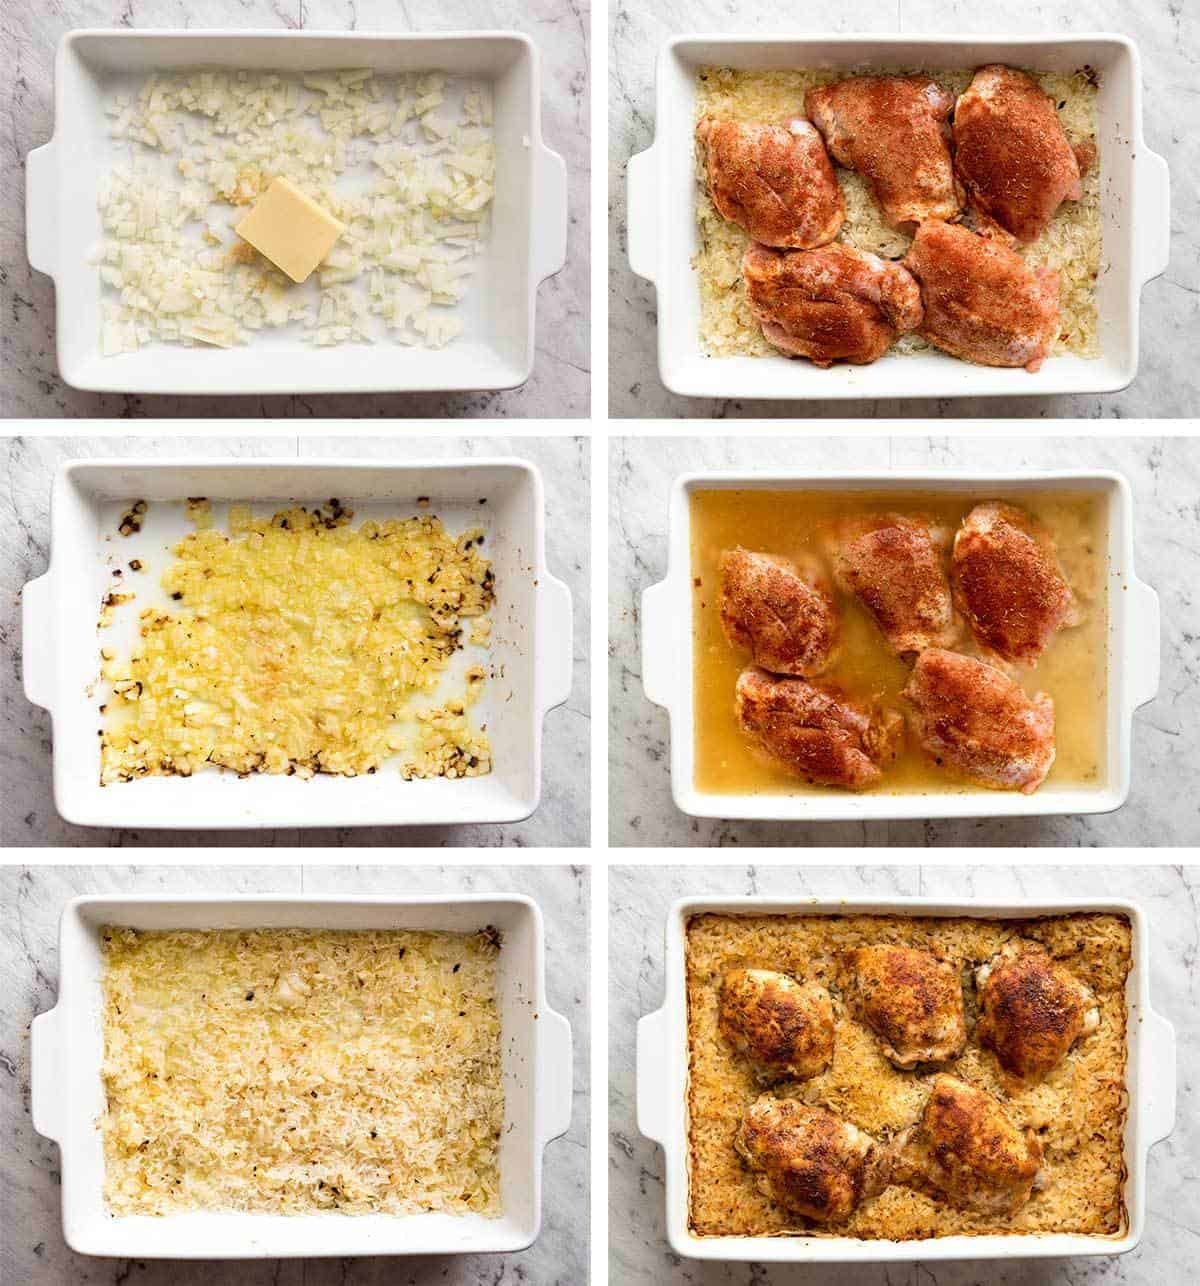 Oven Baked Chicken and Rice made in one pan, no stove. The step that makes all the difference is baking butter and onion before adding rice, liquid and the chicken. The rice is outrageously delicious! www.recipetineats.com